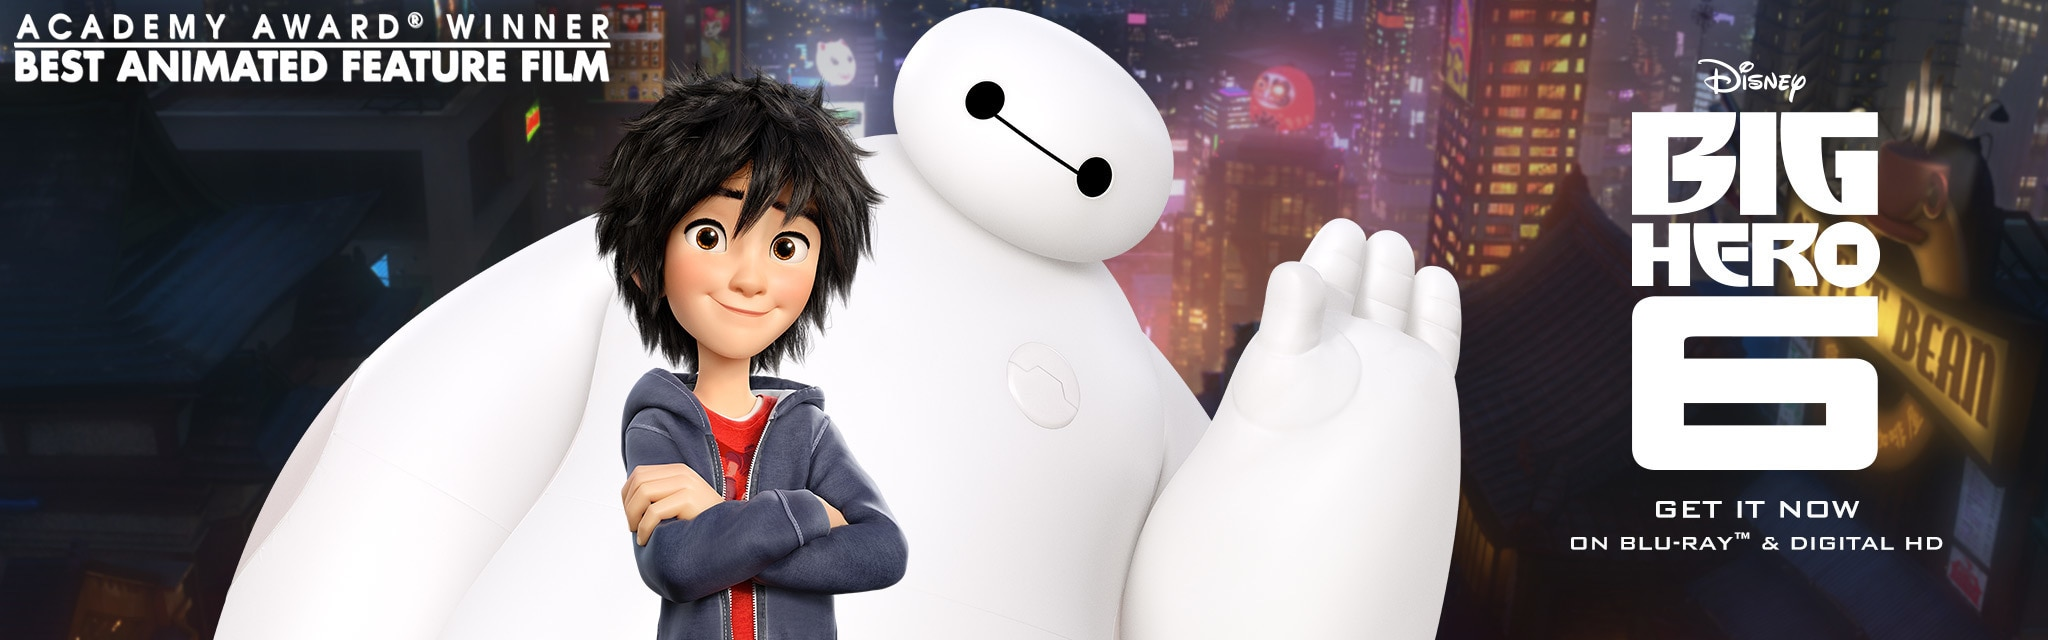 Big Hero 6 - Property Site - Hero